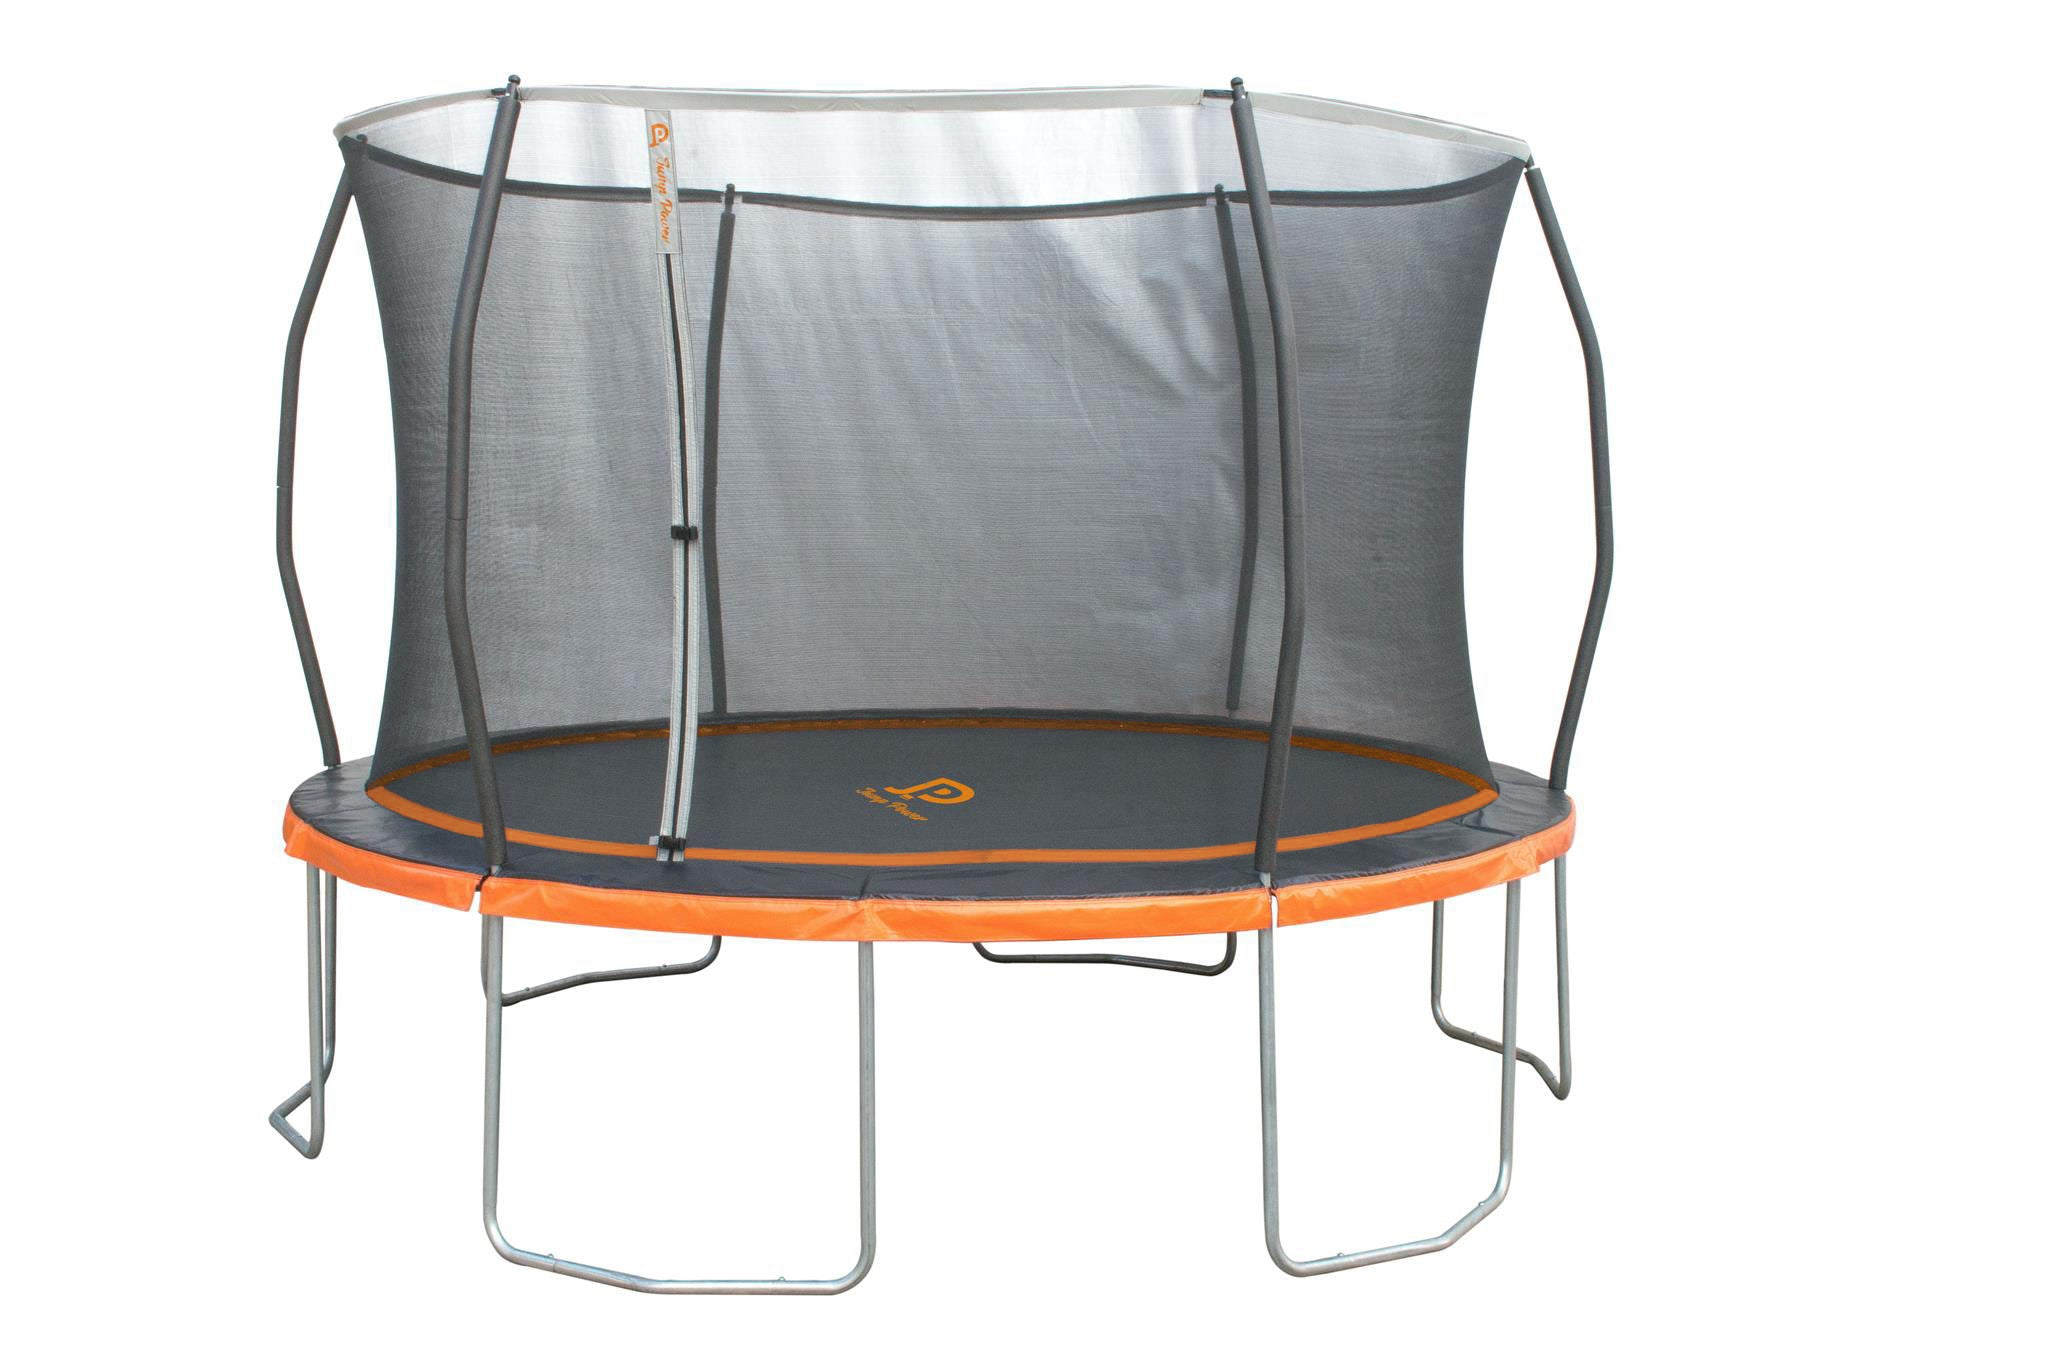 "Jump Power ""ASTM Safety Approved"" 12-Foot Trampoline with Safety Net Enclosure System, Black, Orange, Silver"